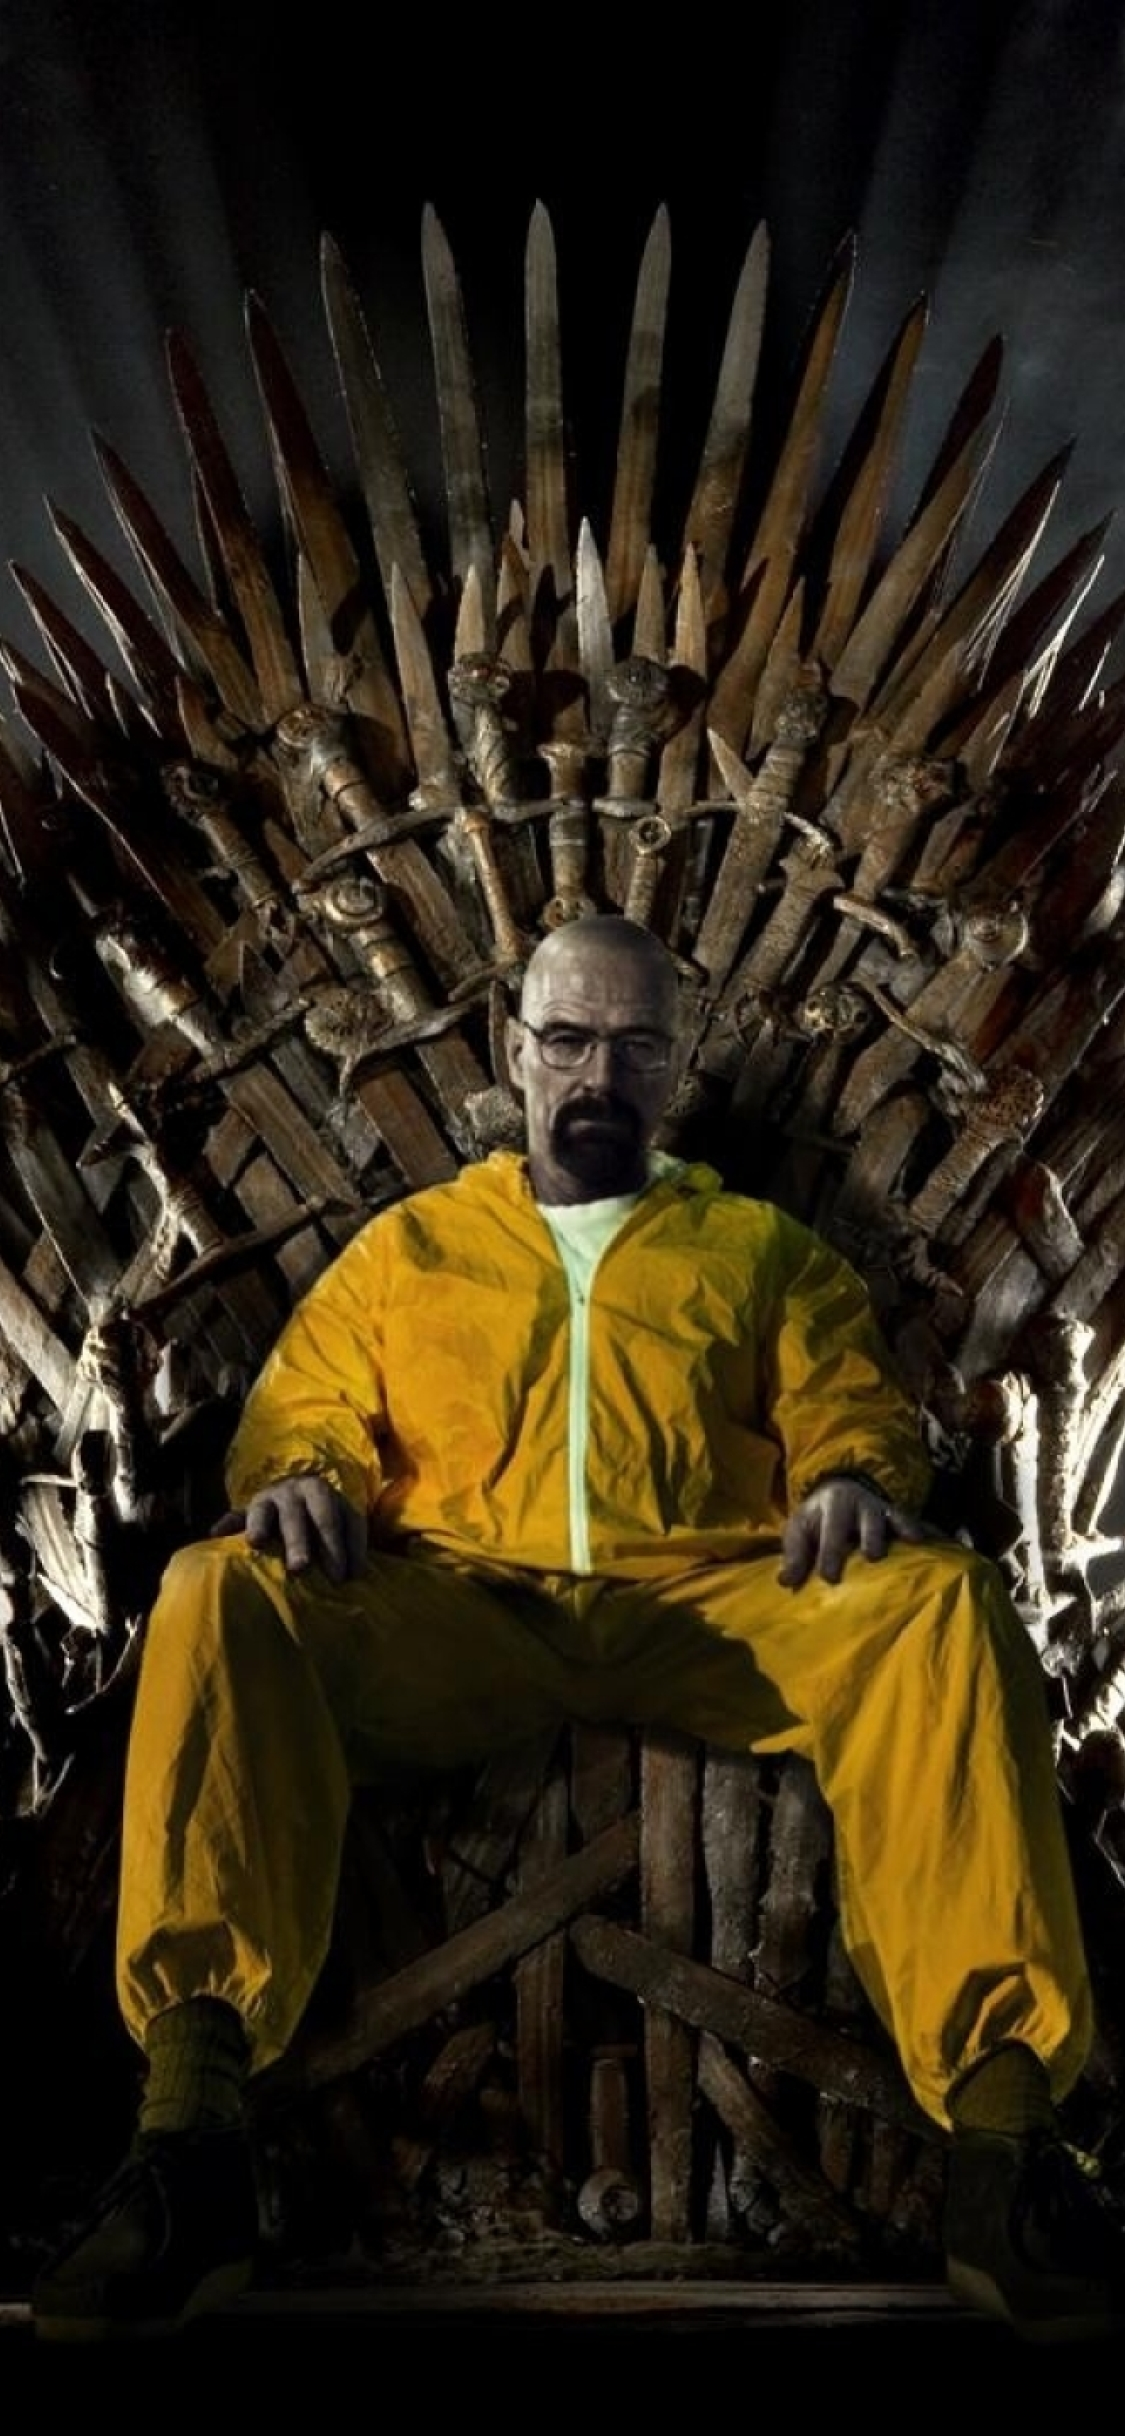 1125x2436 Breaking Bad Game Of Thrones Wallpapers Iphone Xs